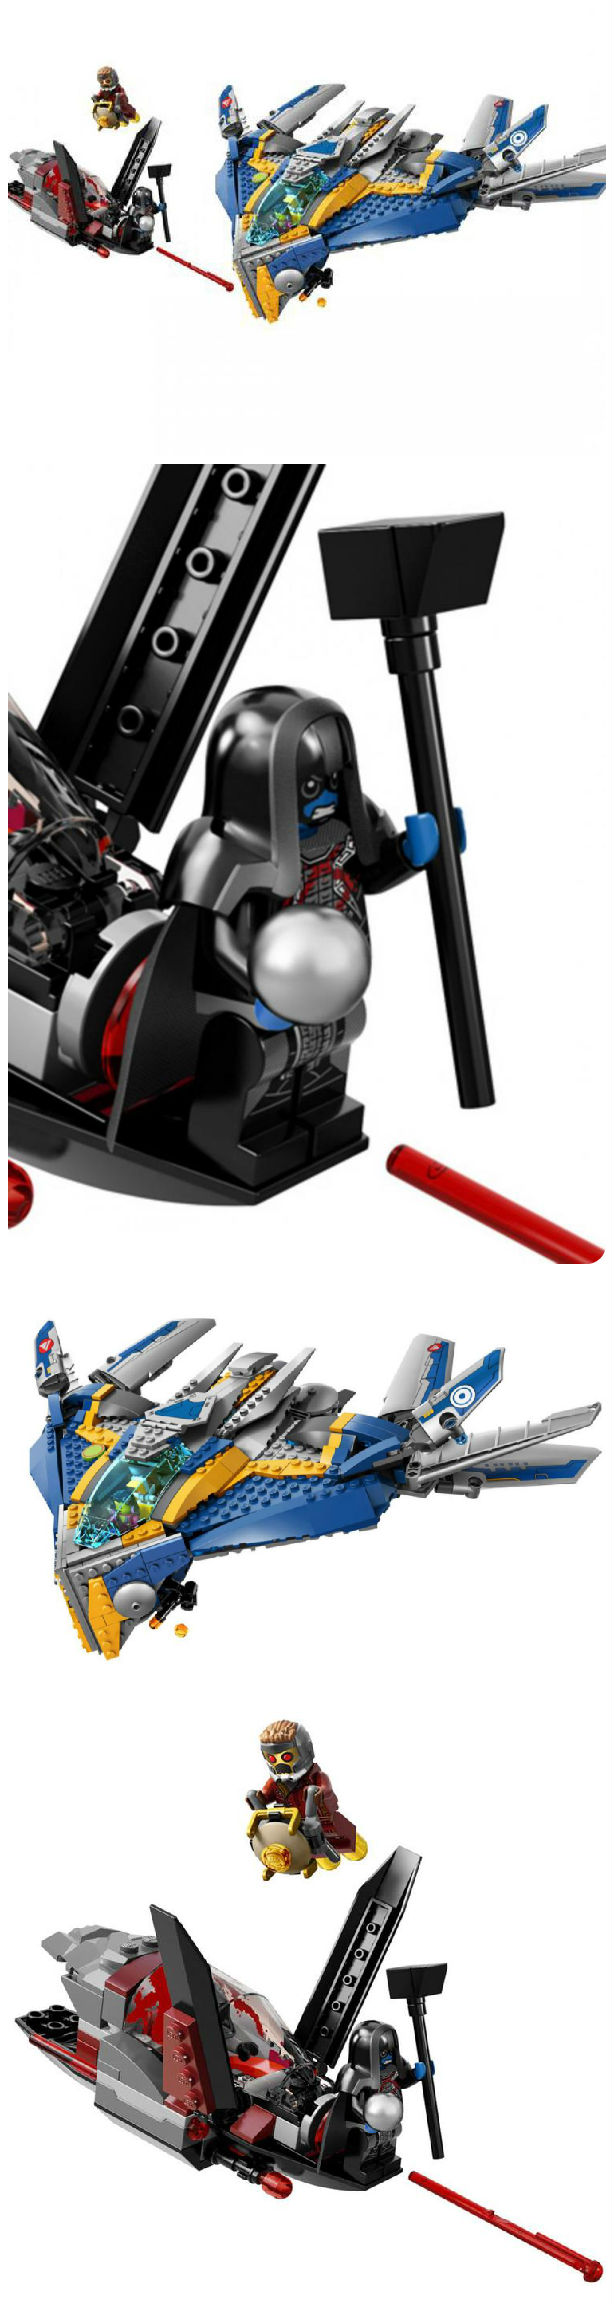 GUARDIANS OF THE GALAXY Movie LEGO Set